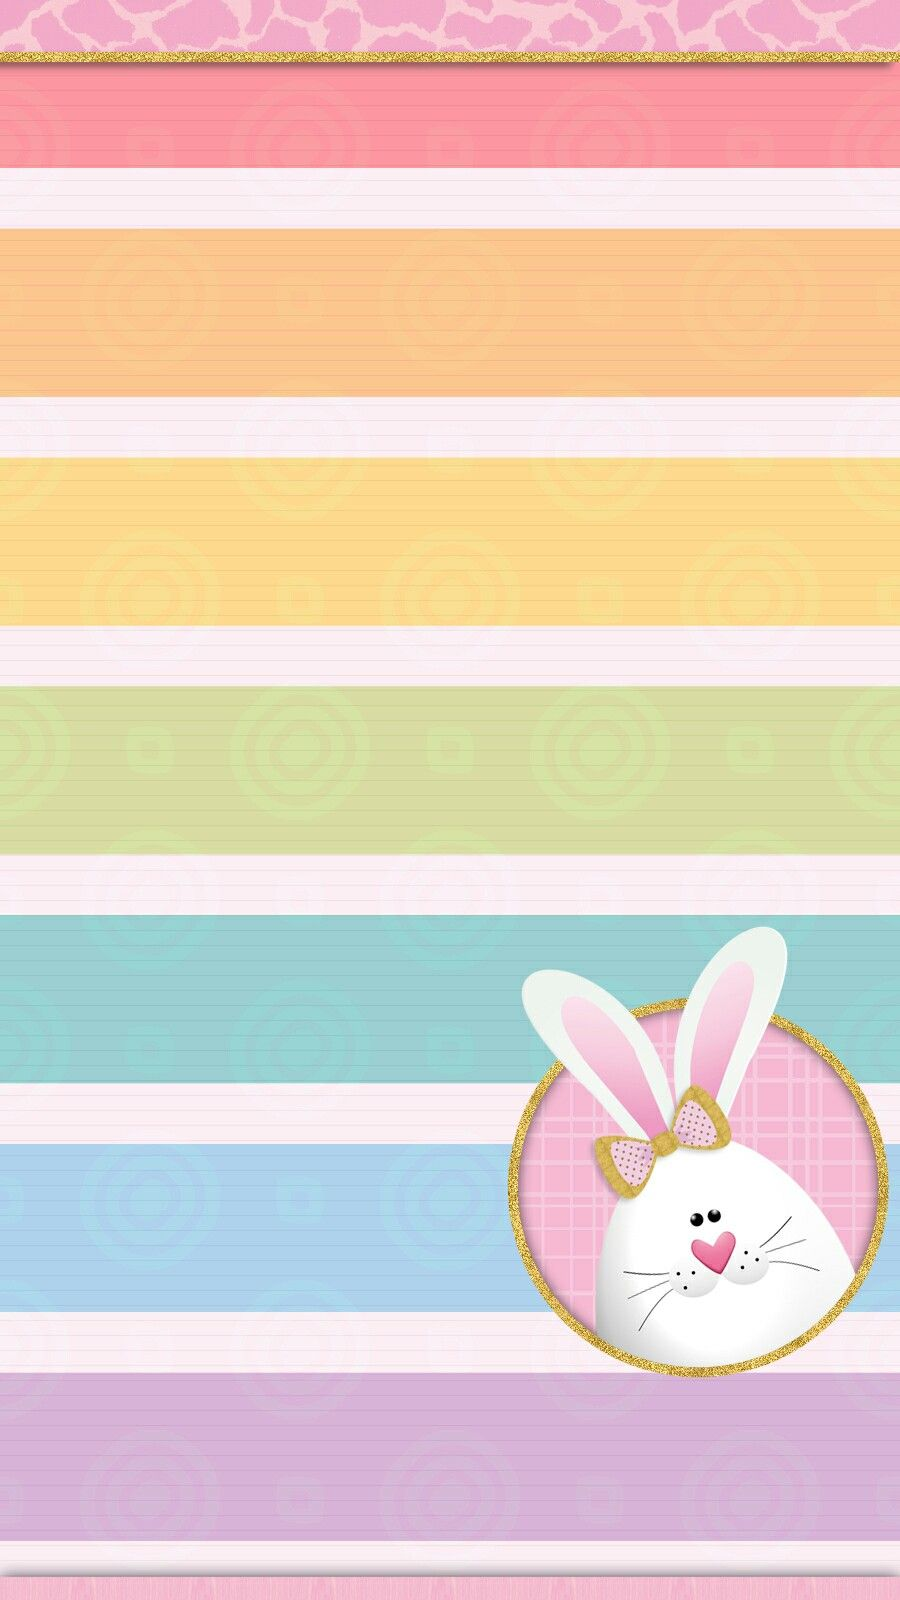 Easter Bunny Wallpaper Iphone Easter Wallpaper Spring Wallpaper